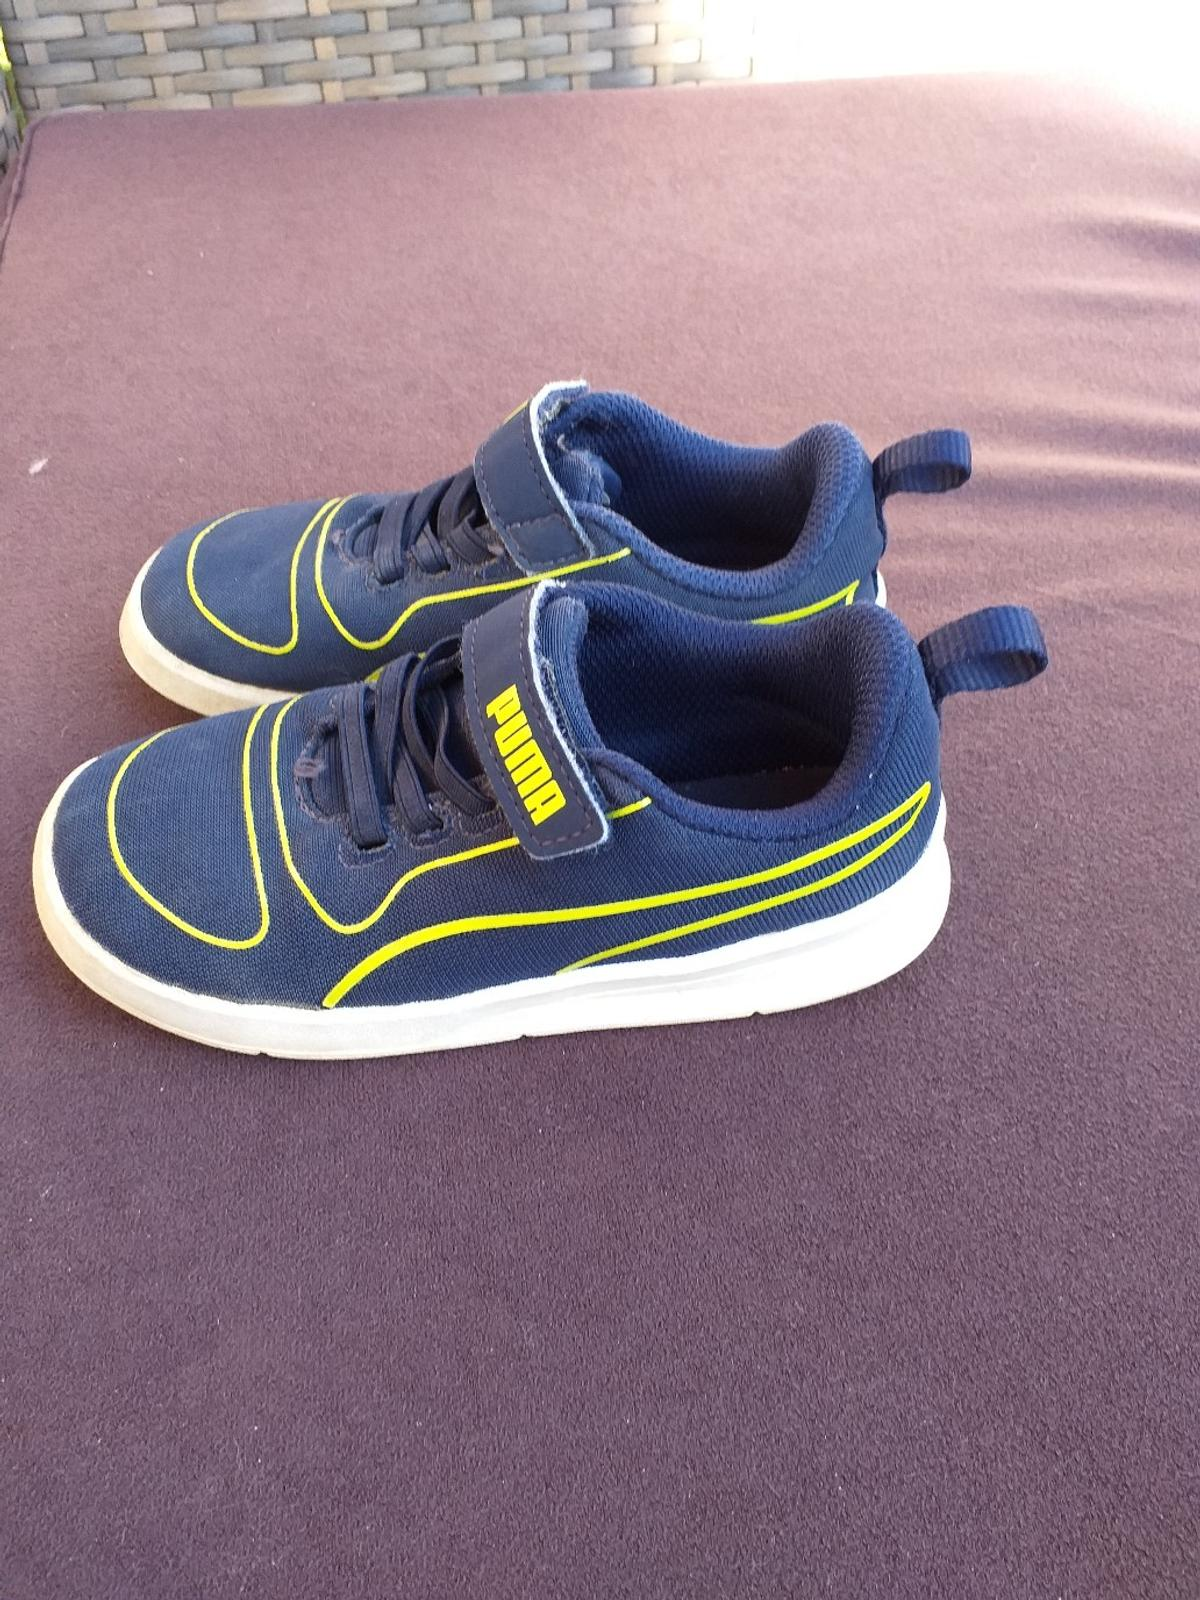 Puma Kinderschuhe in 8120 Peggau for €5.00 for sale | Shpock